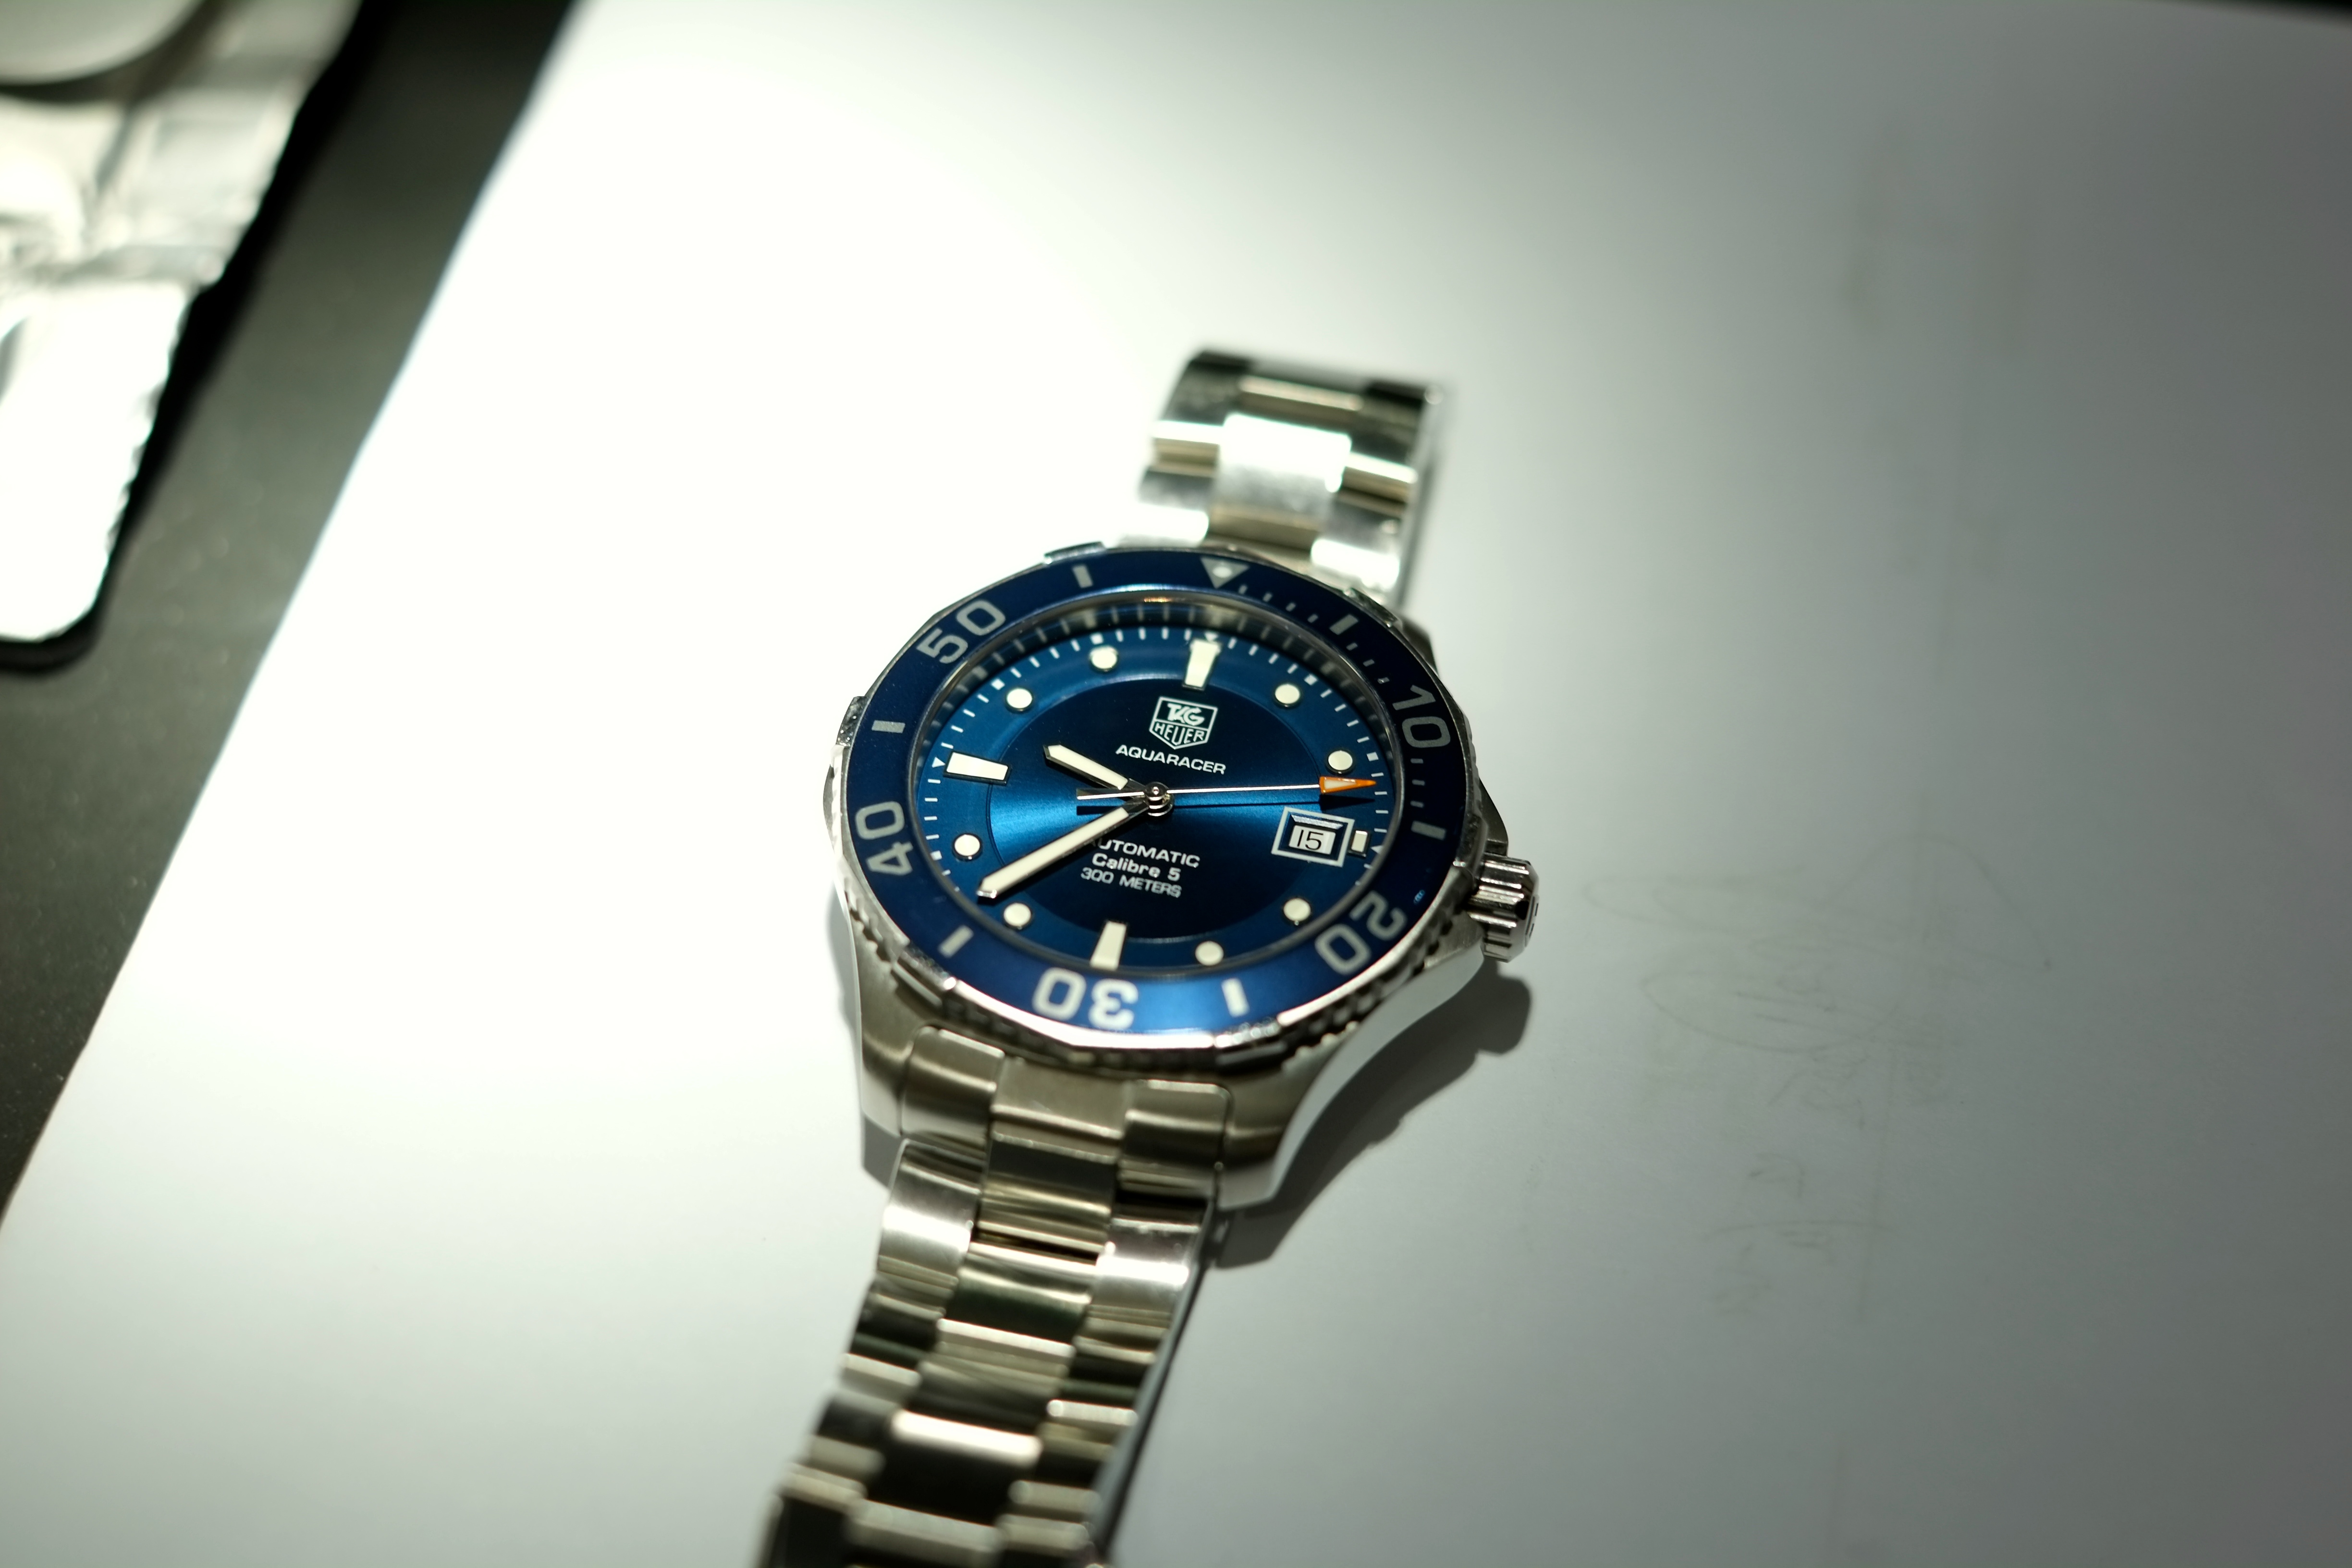 Tag heuer aquaracer 300 review wan2111 journeyman for The tag heuer aquaracer